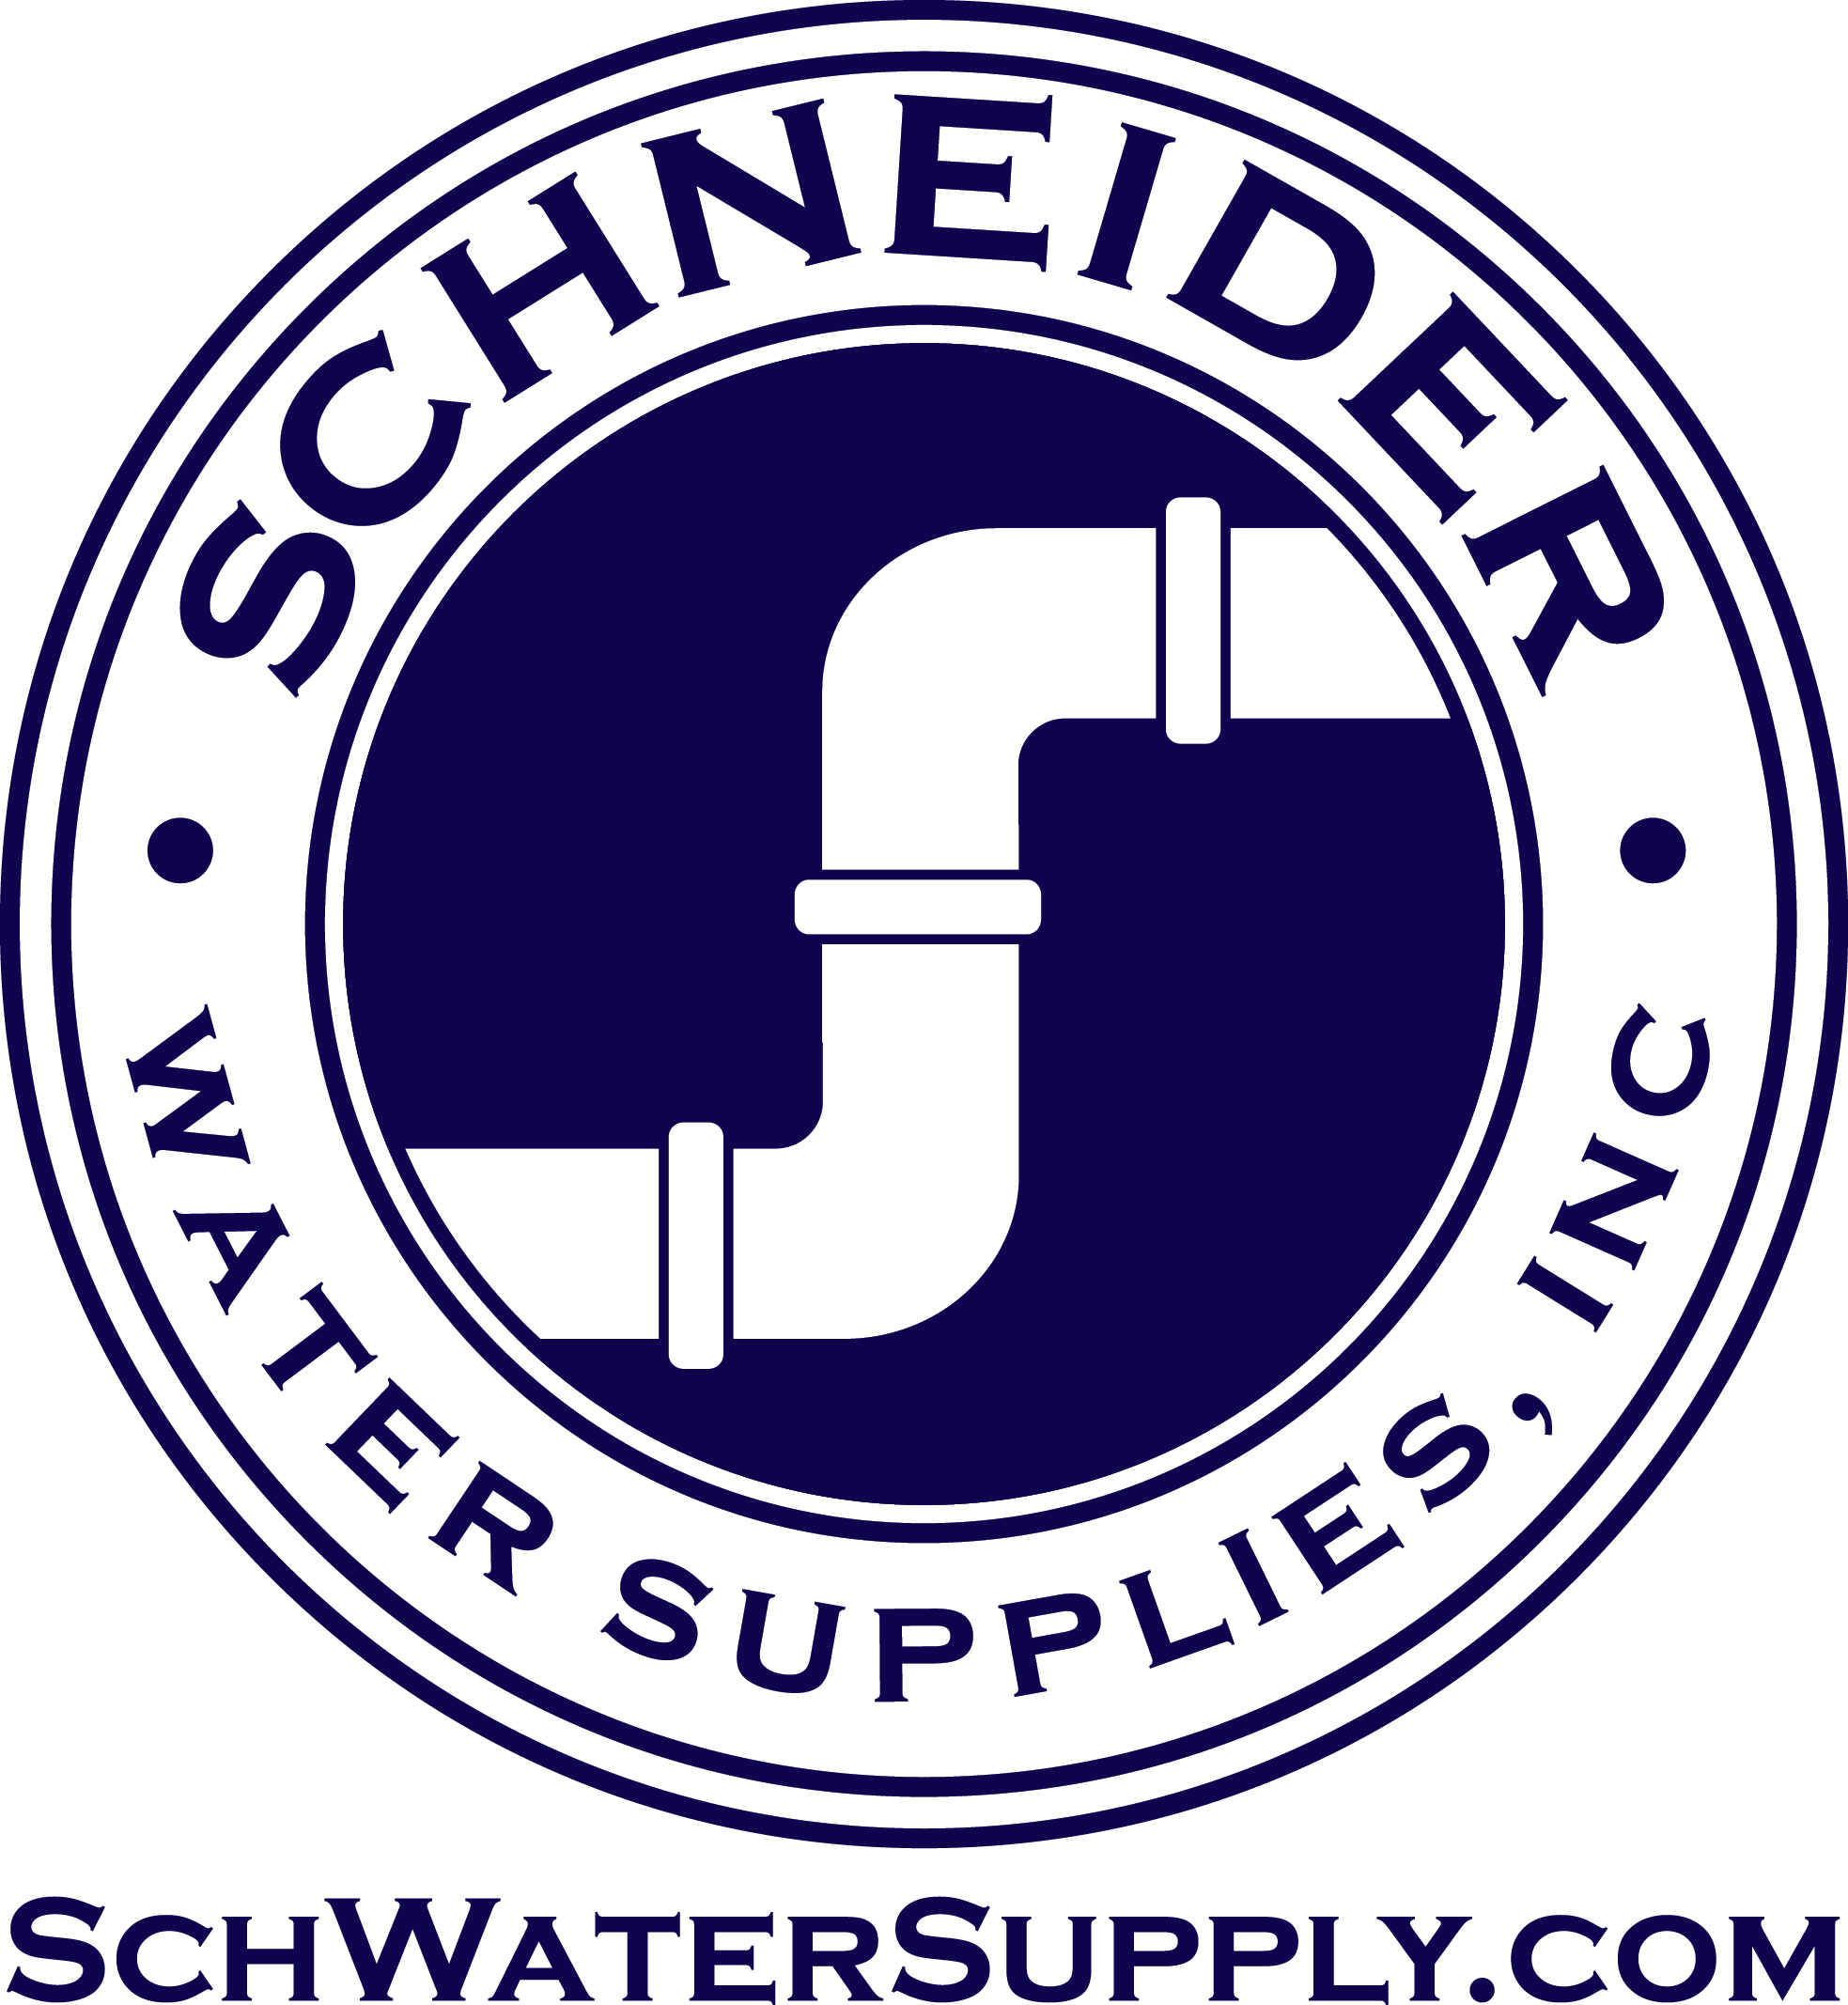 Schneider Navy on White.jpg